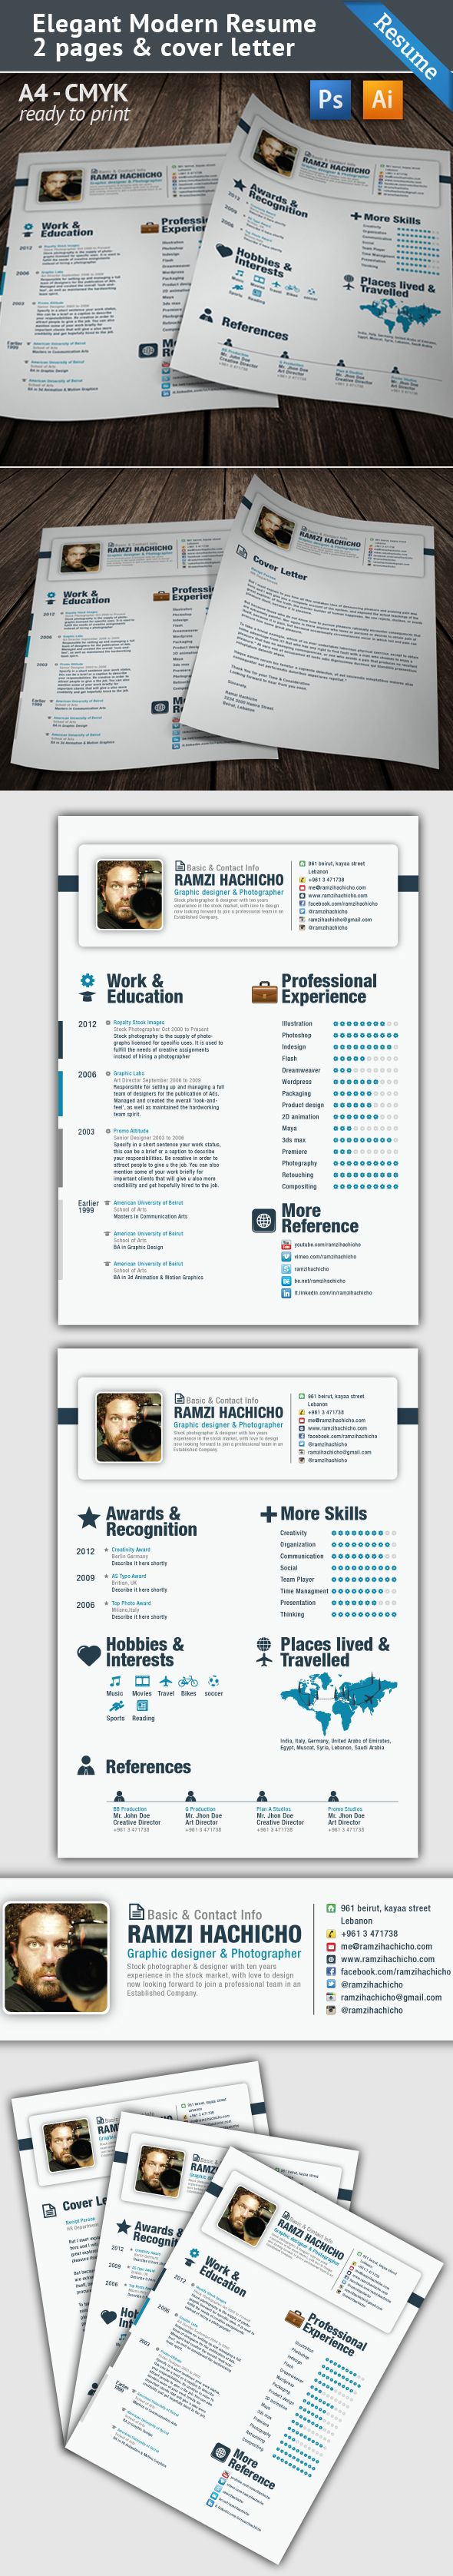 Modern Resume 2 pages u0026 Cover letter